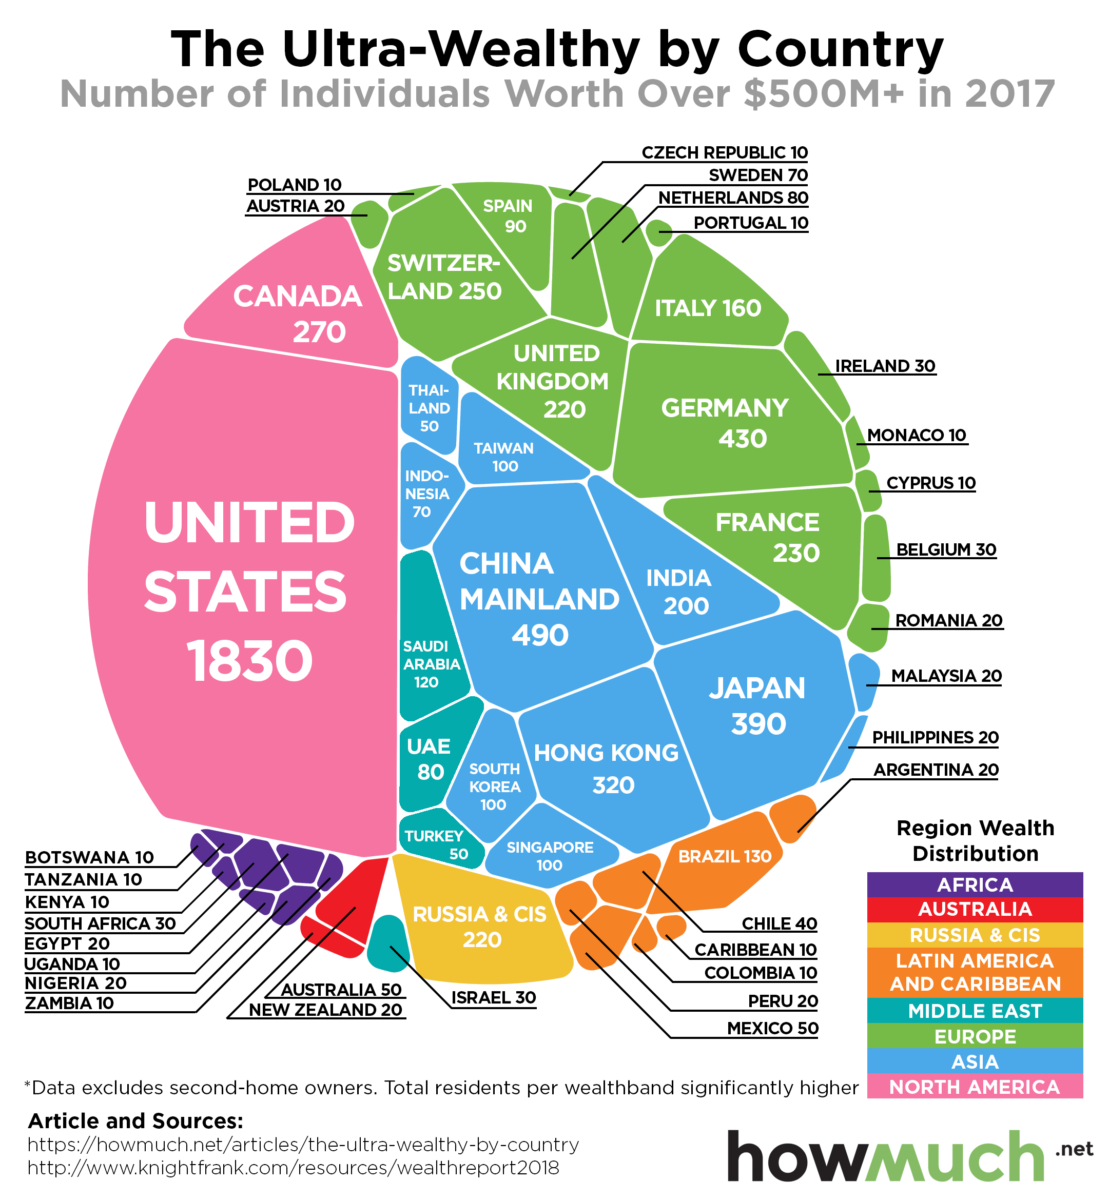 Where the World's Ultra Rich Population Lives - The Big Picture